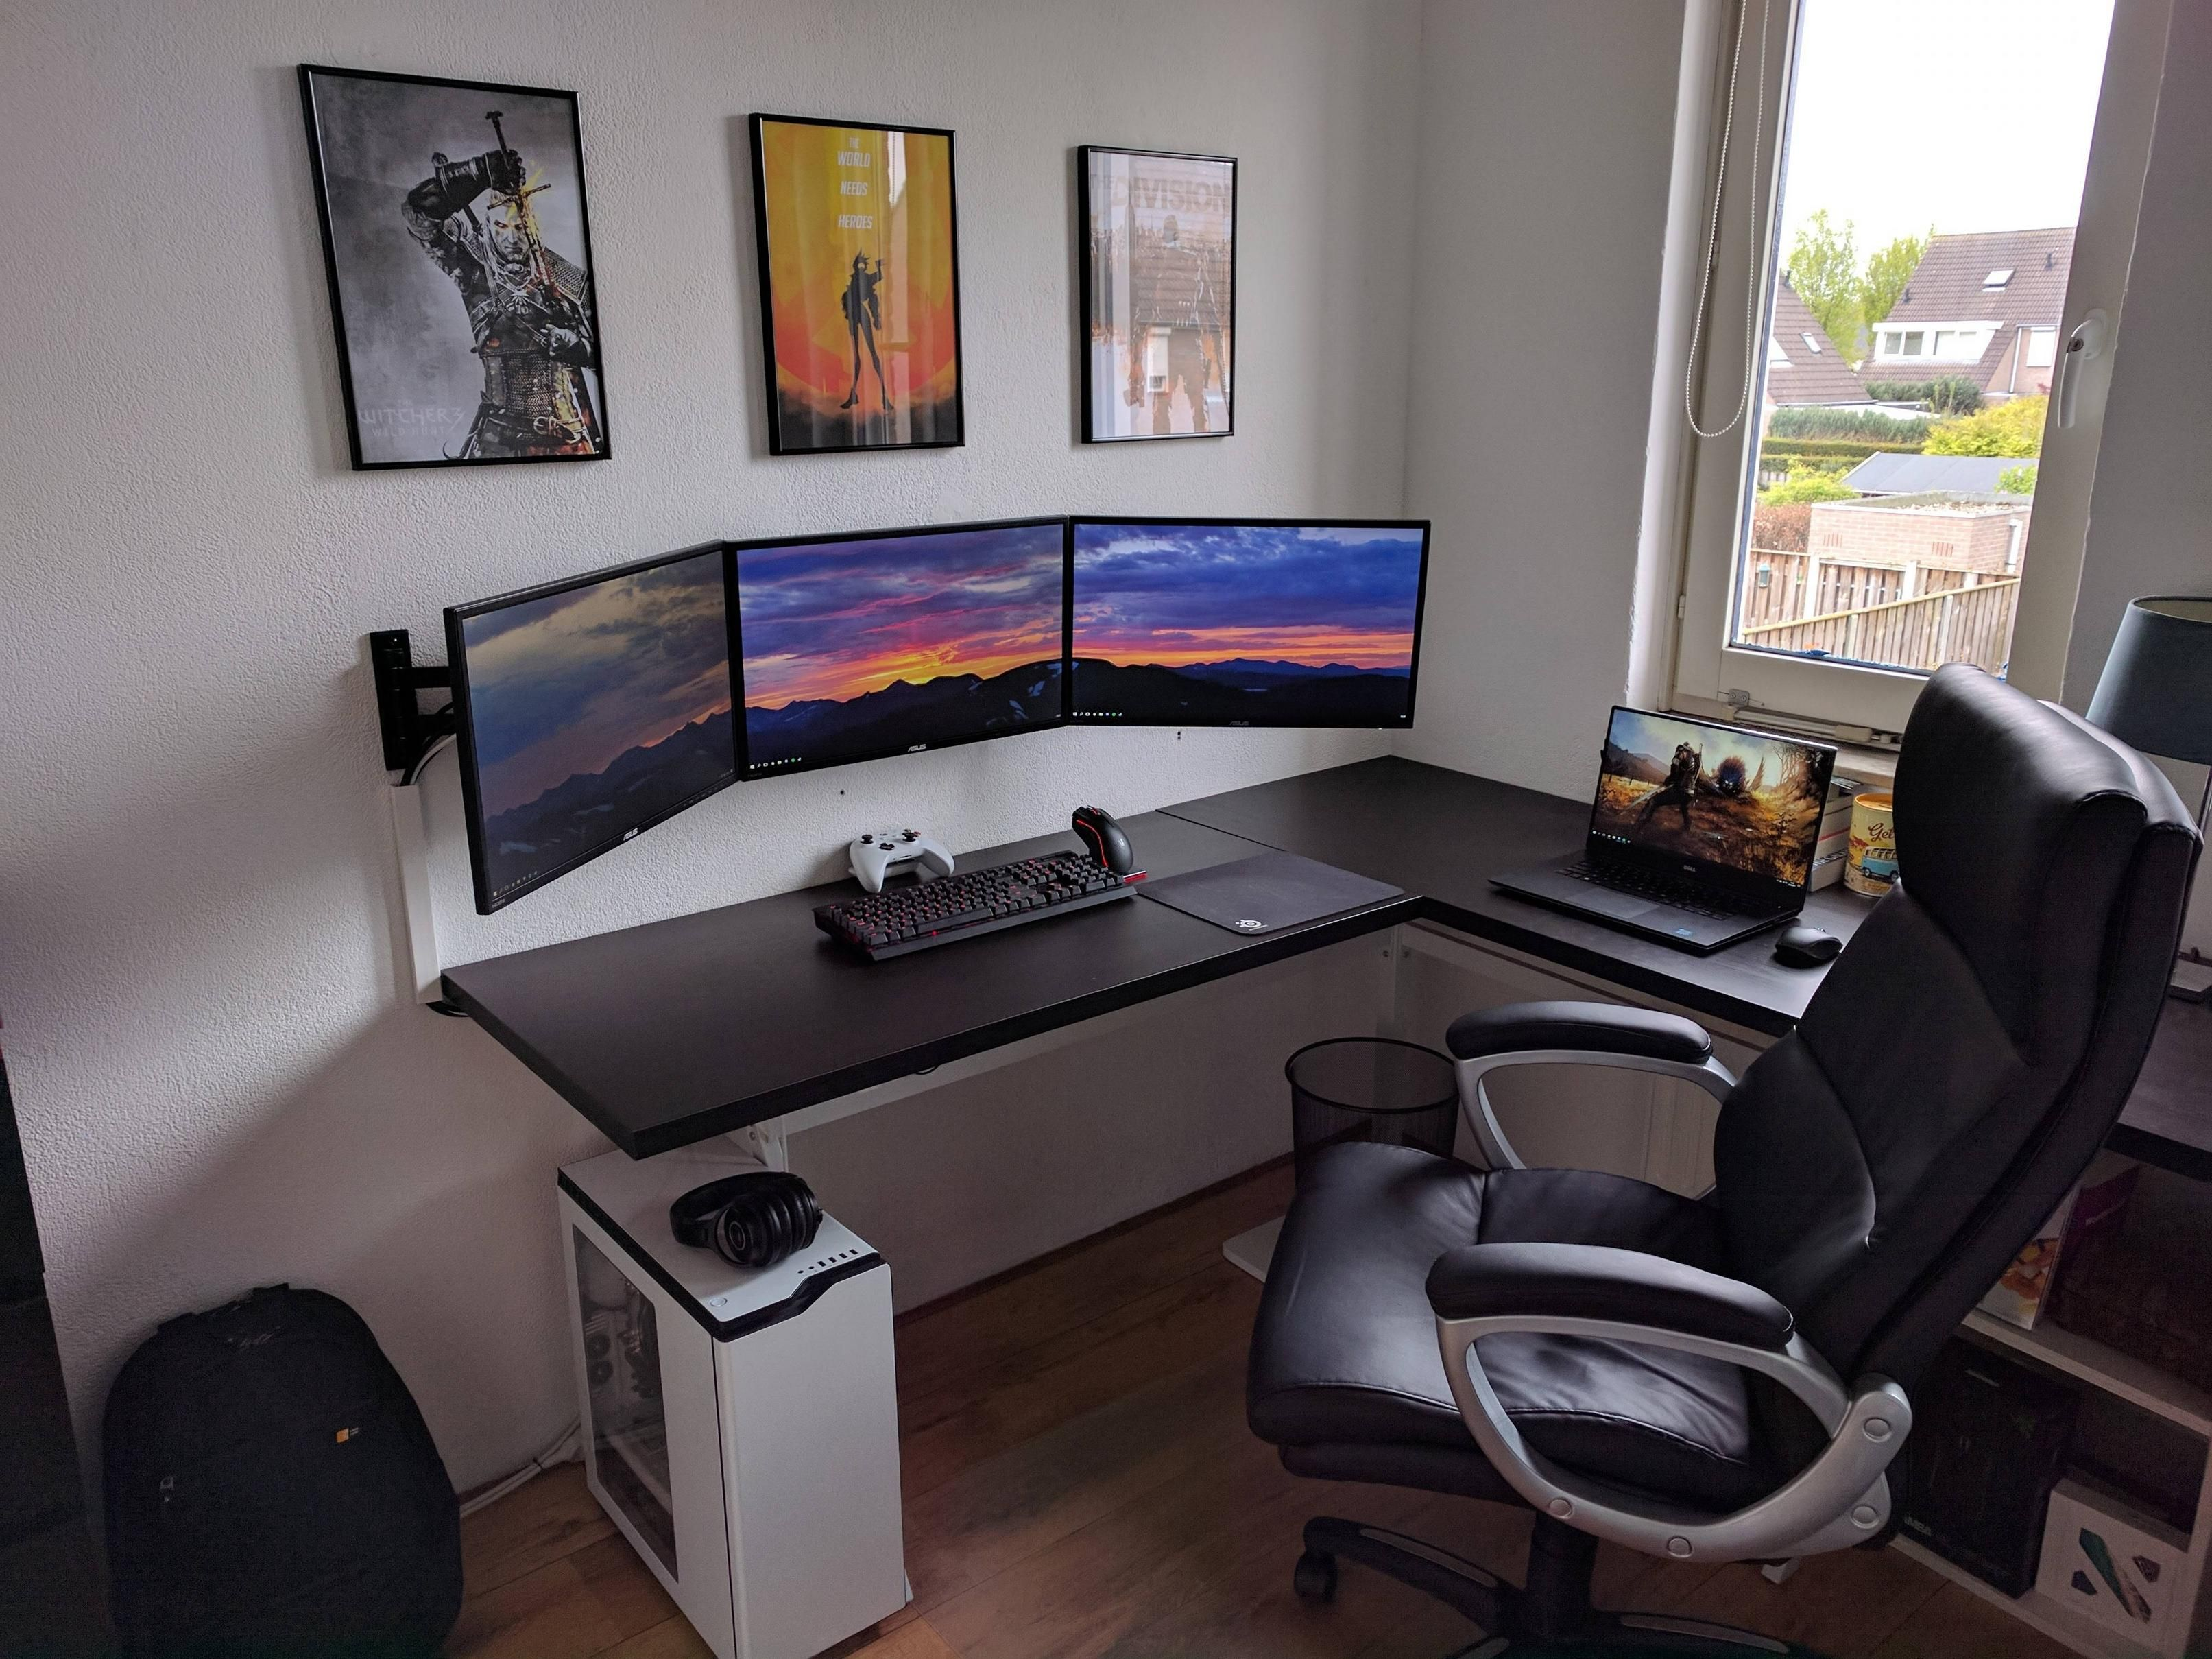 If you have a game room or recreation area in your home, it's important to have good lighting. Living Room Pc Gaming Setup